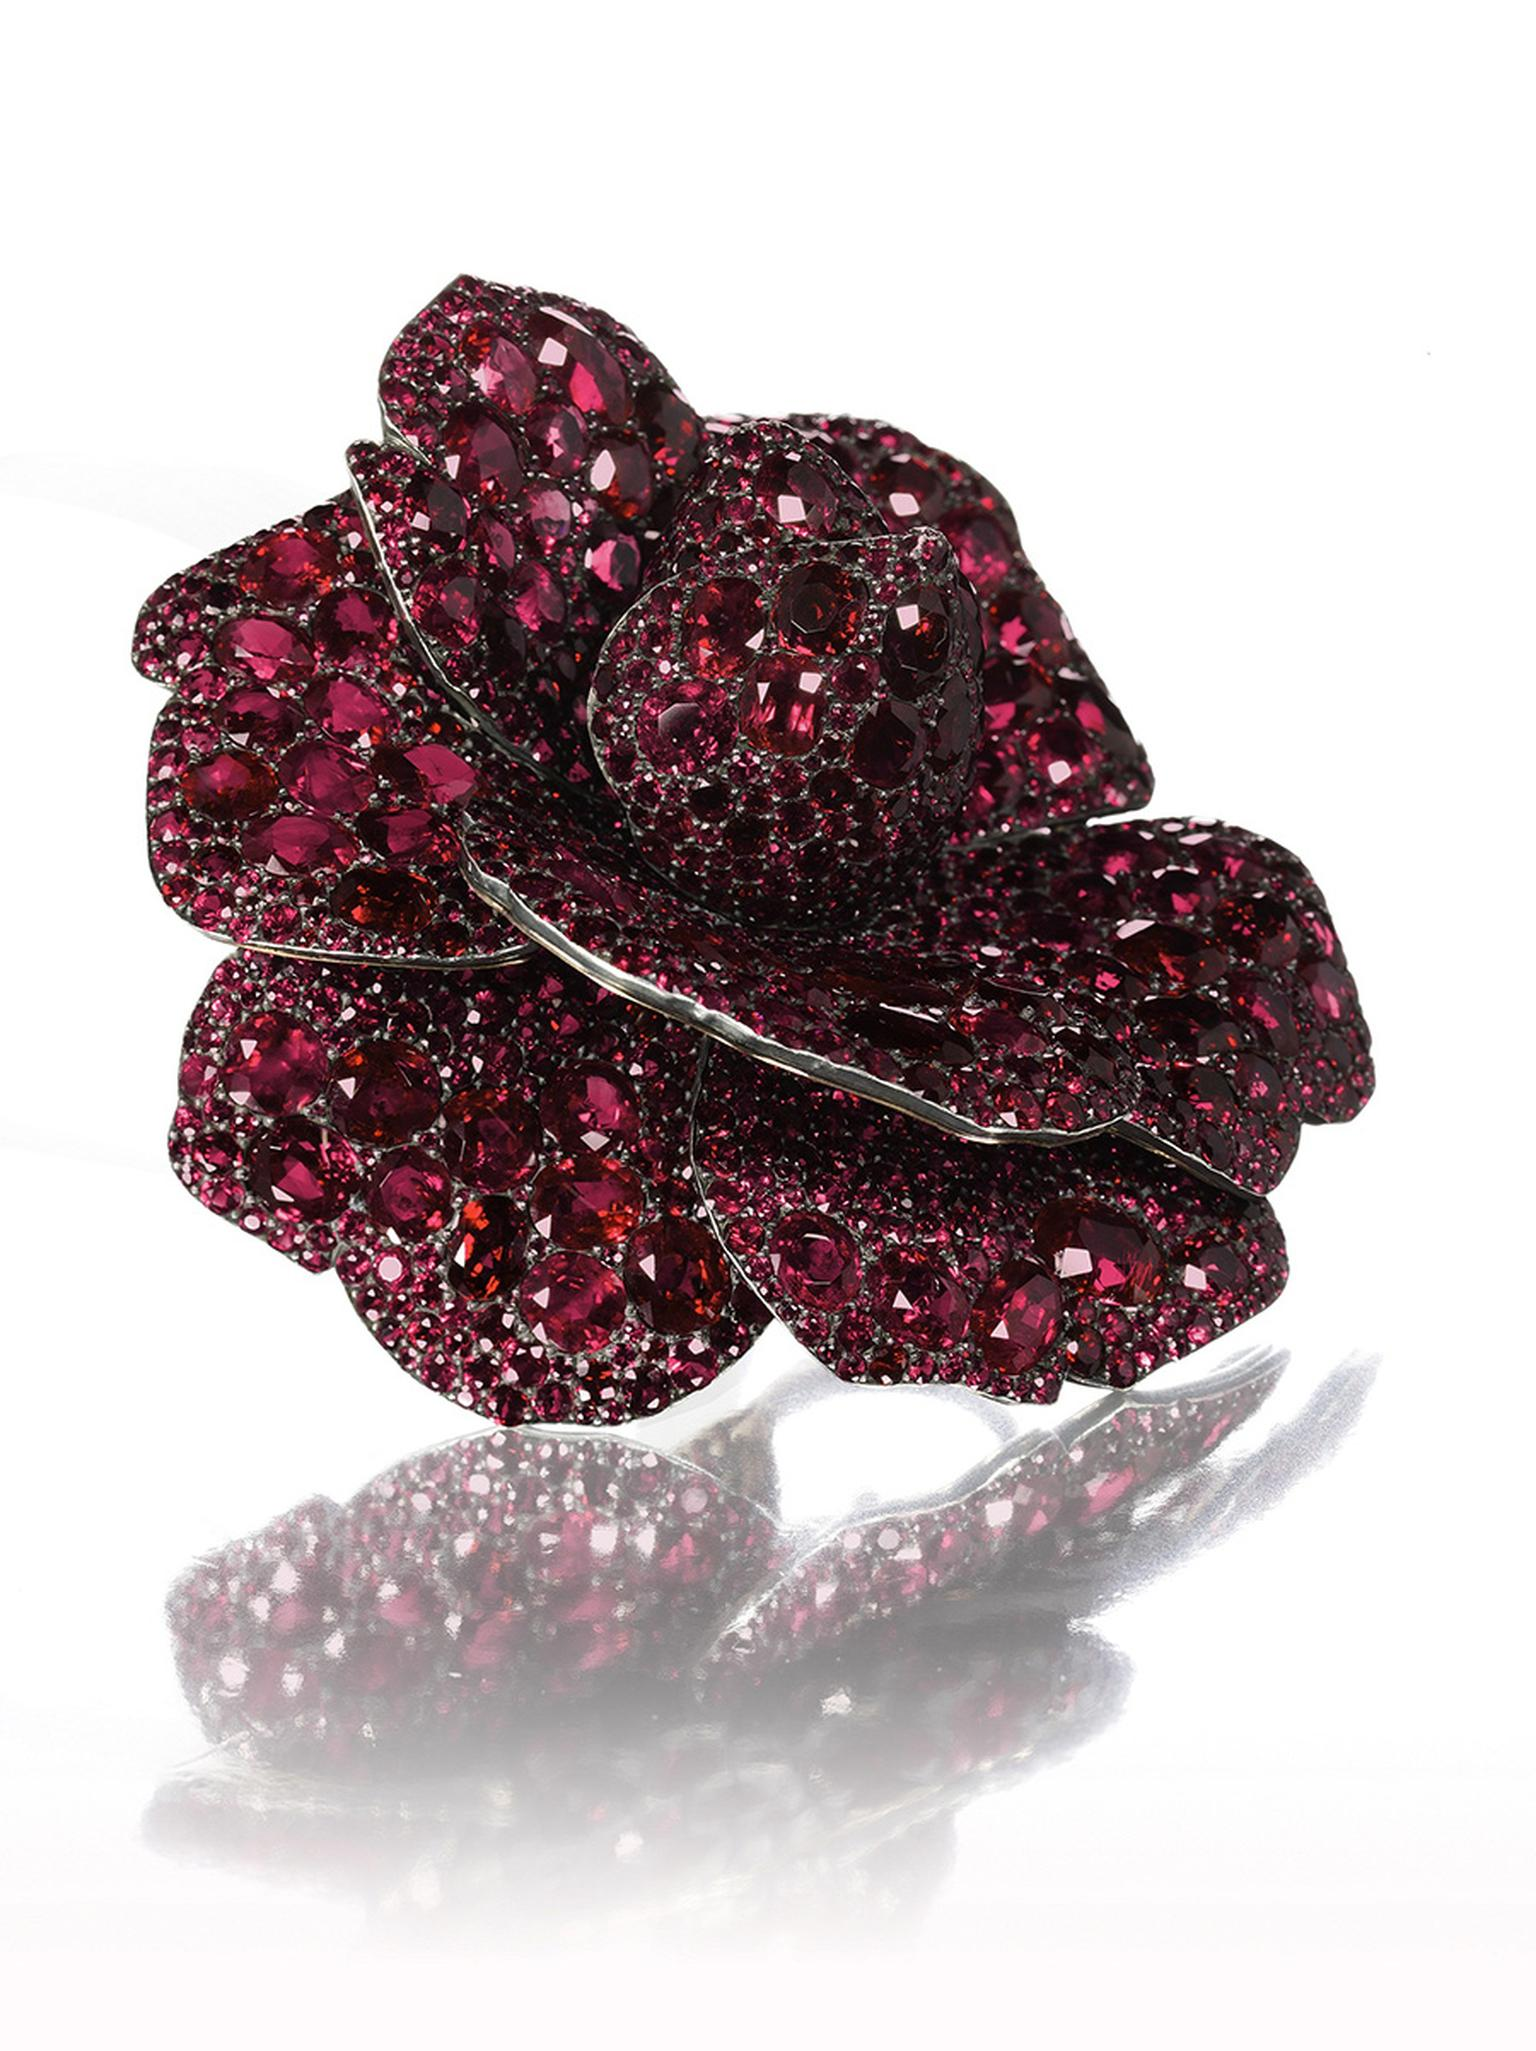 A-ruby-and-diamond-Camellia-flower-brooch,-by-JAR,-2003.jpg